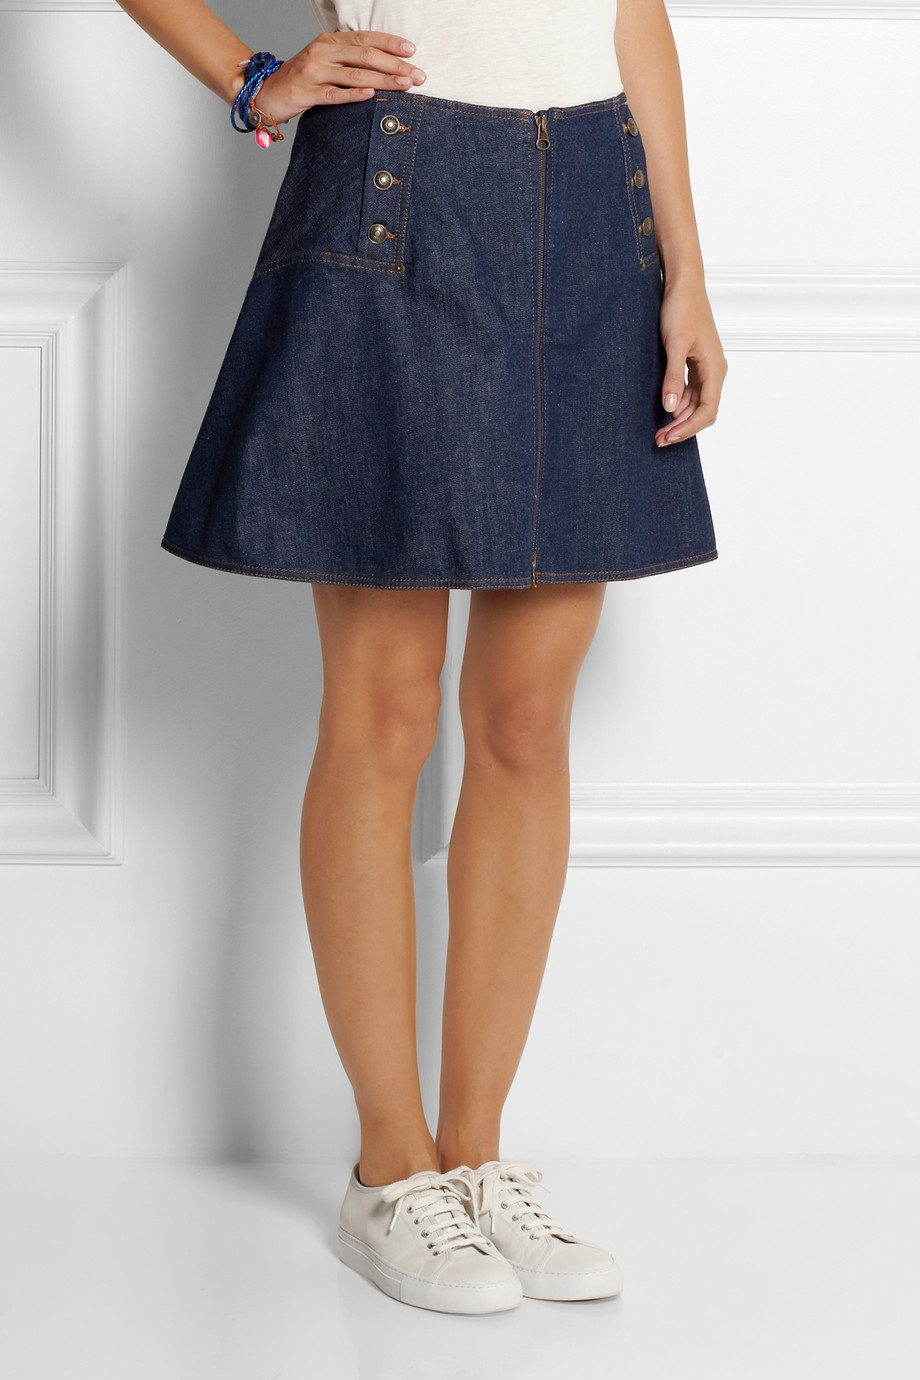 See by chloé Flared Stretch-Denim Mini Skirt in Blue | Lyst